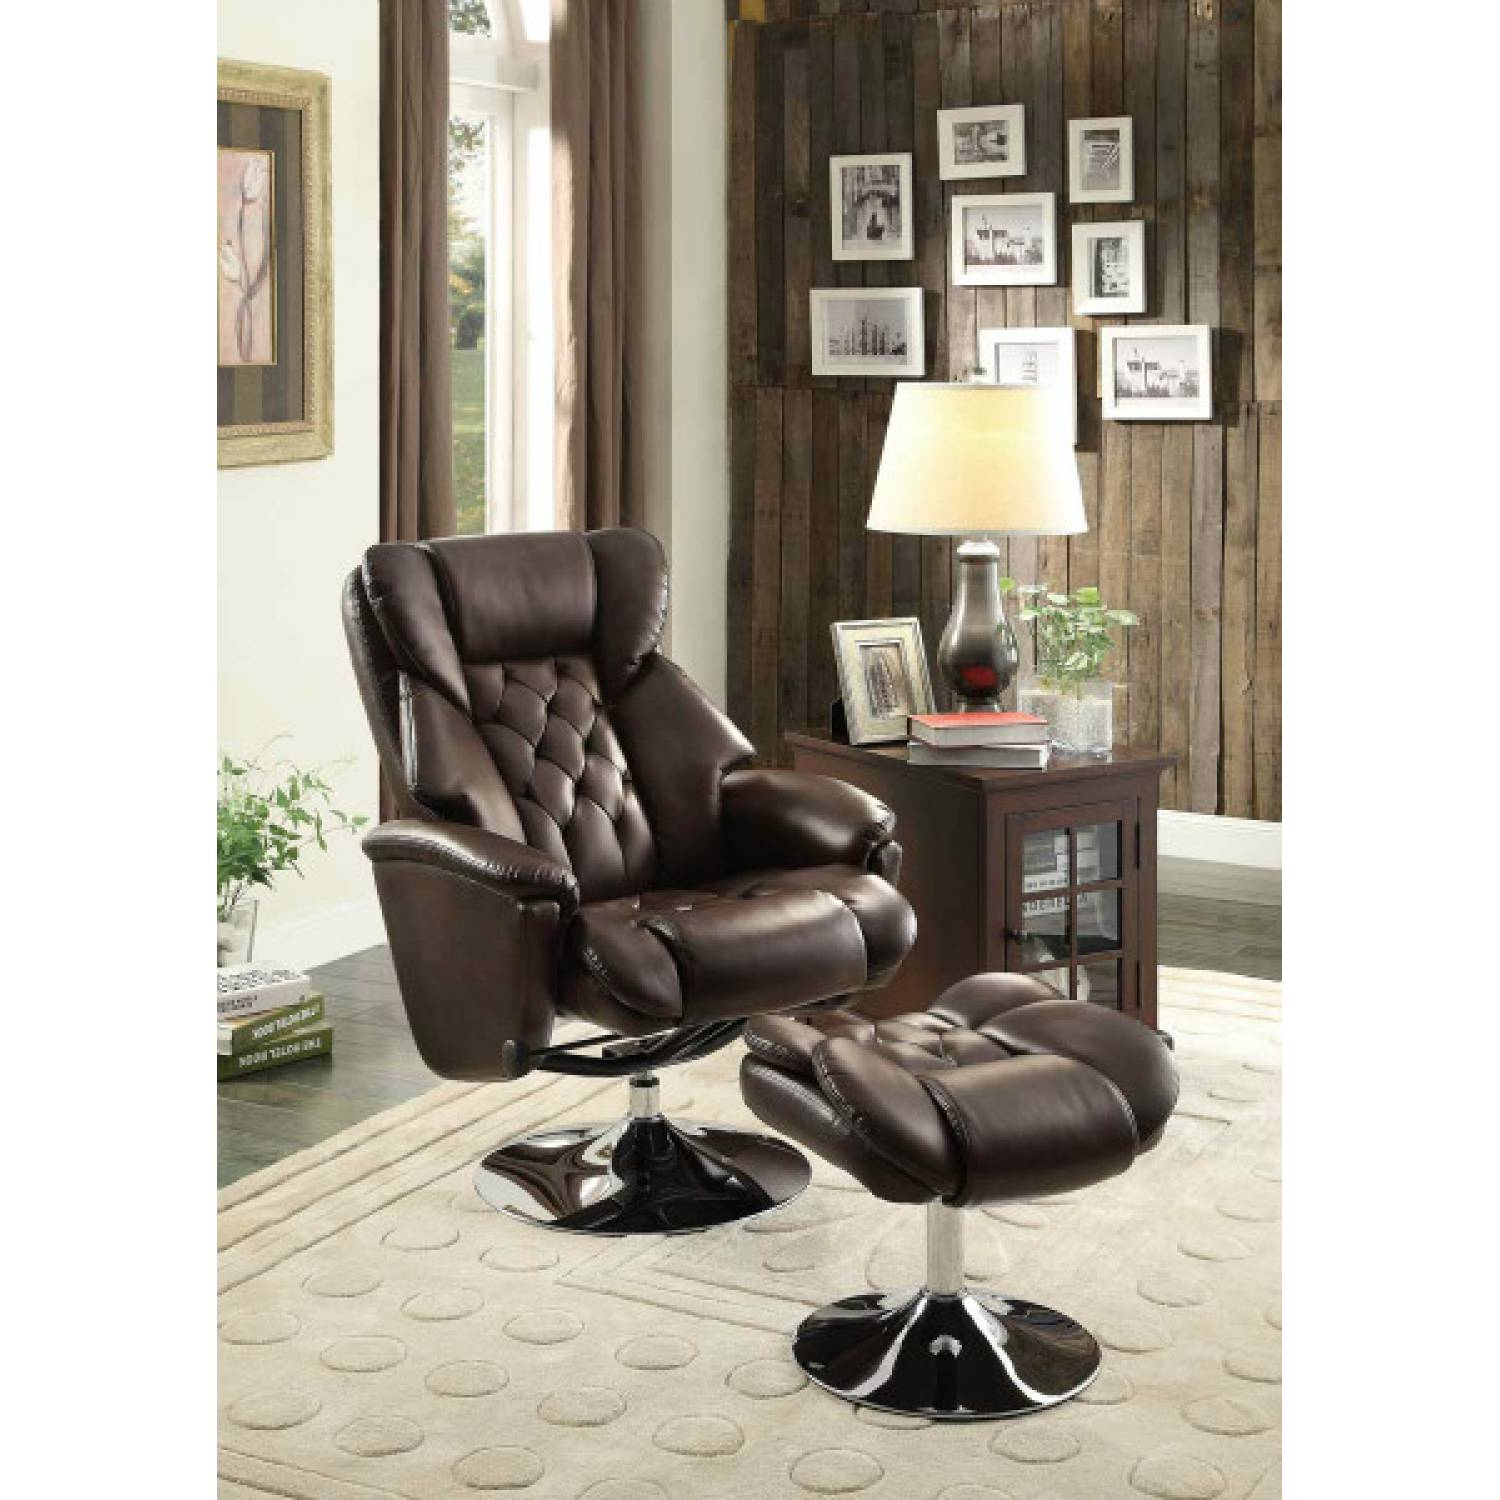 Wondrous Aleron Swivel Reclining Chair With Ottoman Dark Brown Bonded Leather Match Pdpeps Interior Chair Design Pdpepsorg